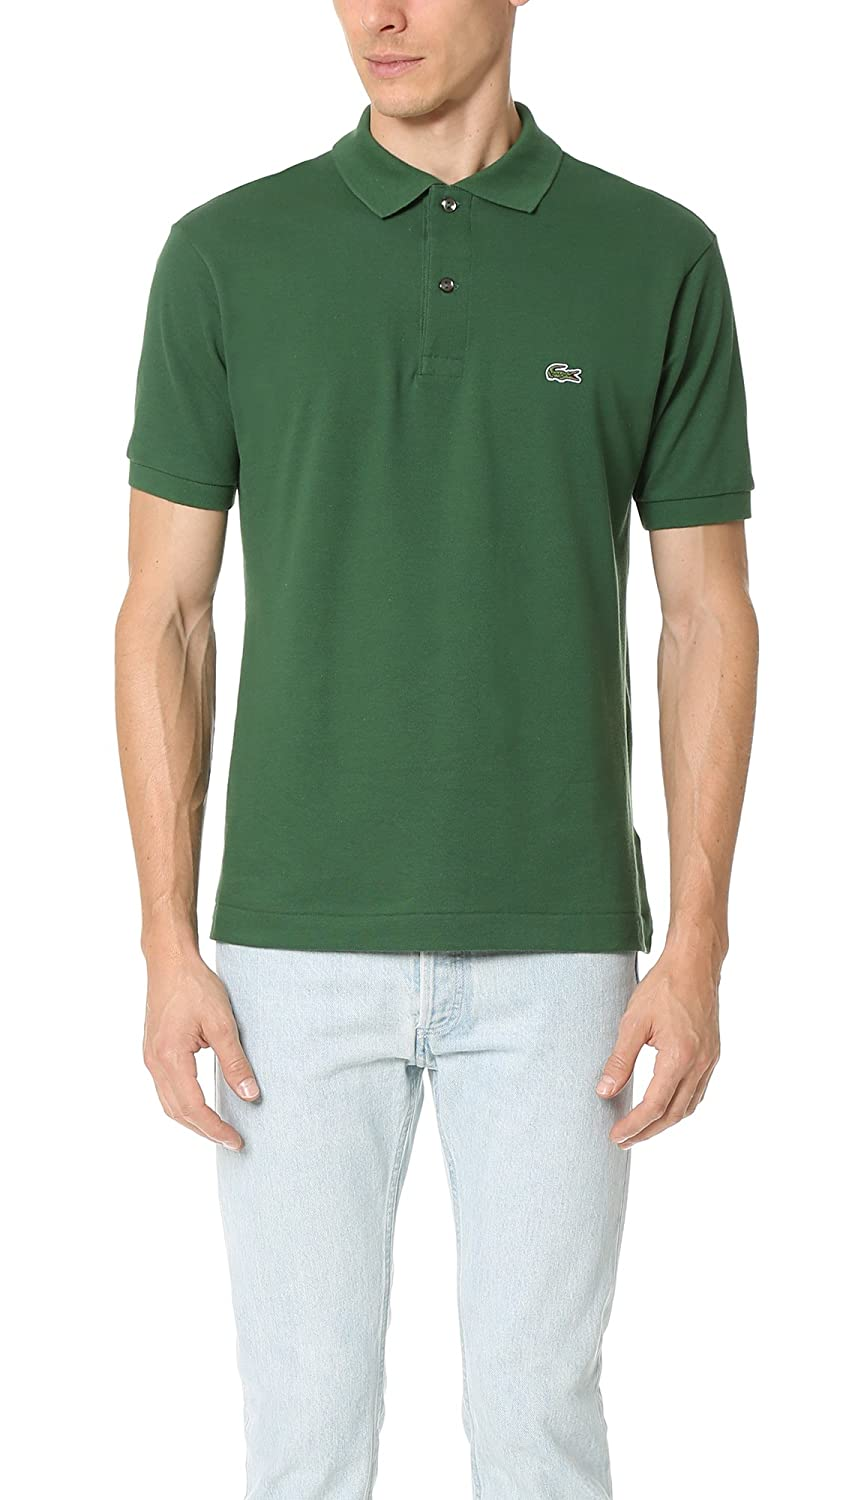 92b9c722 Symbol of relaxed elegance since 1933, the Lacoste brand, backed by its  authentic roots in sports, offers a unique and original universe through  the medium ...